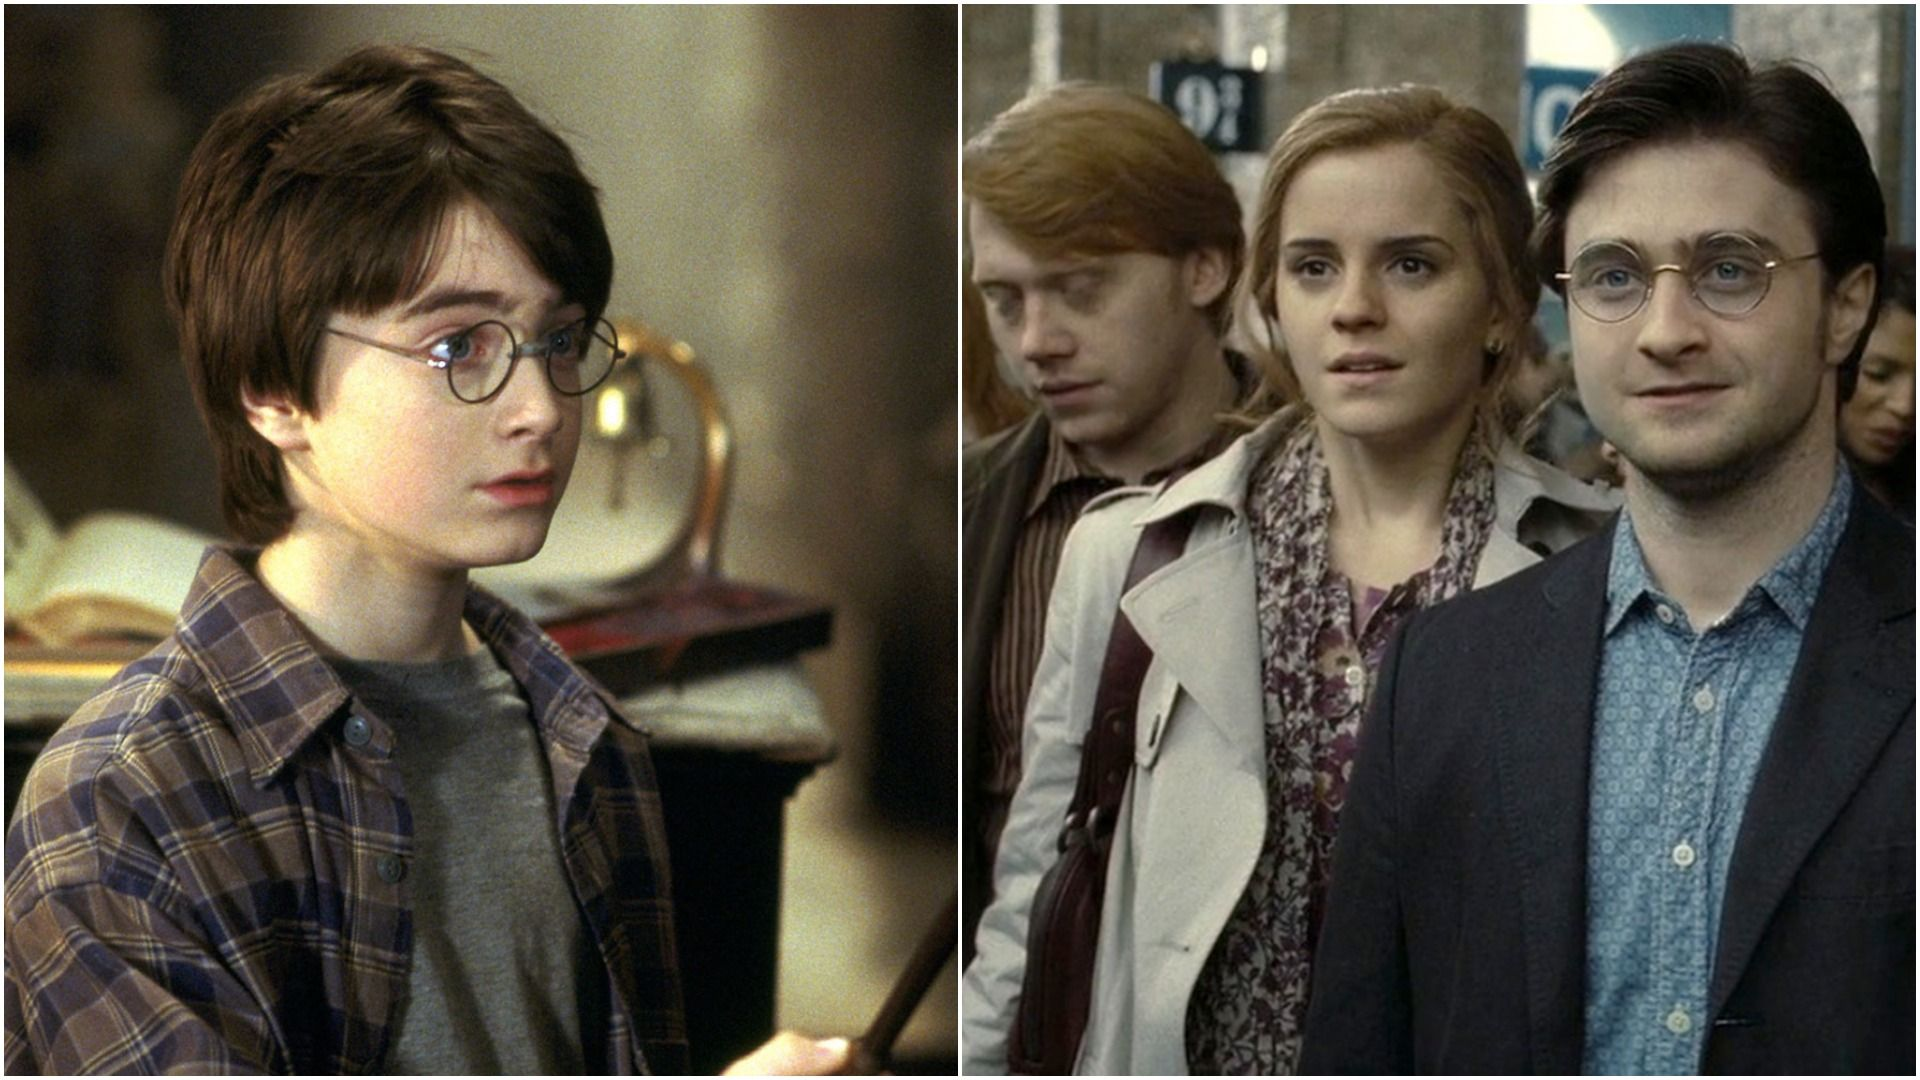 A complete timeline of events in the Harry Potter world